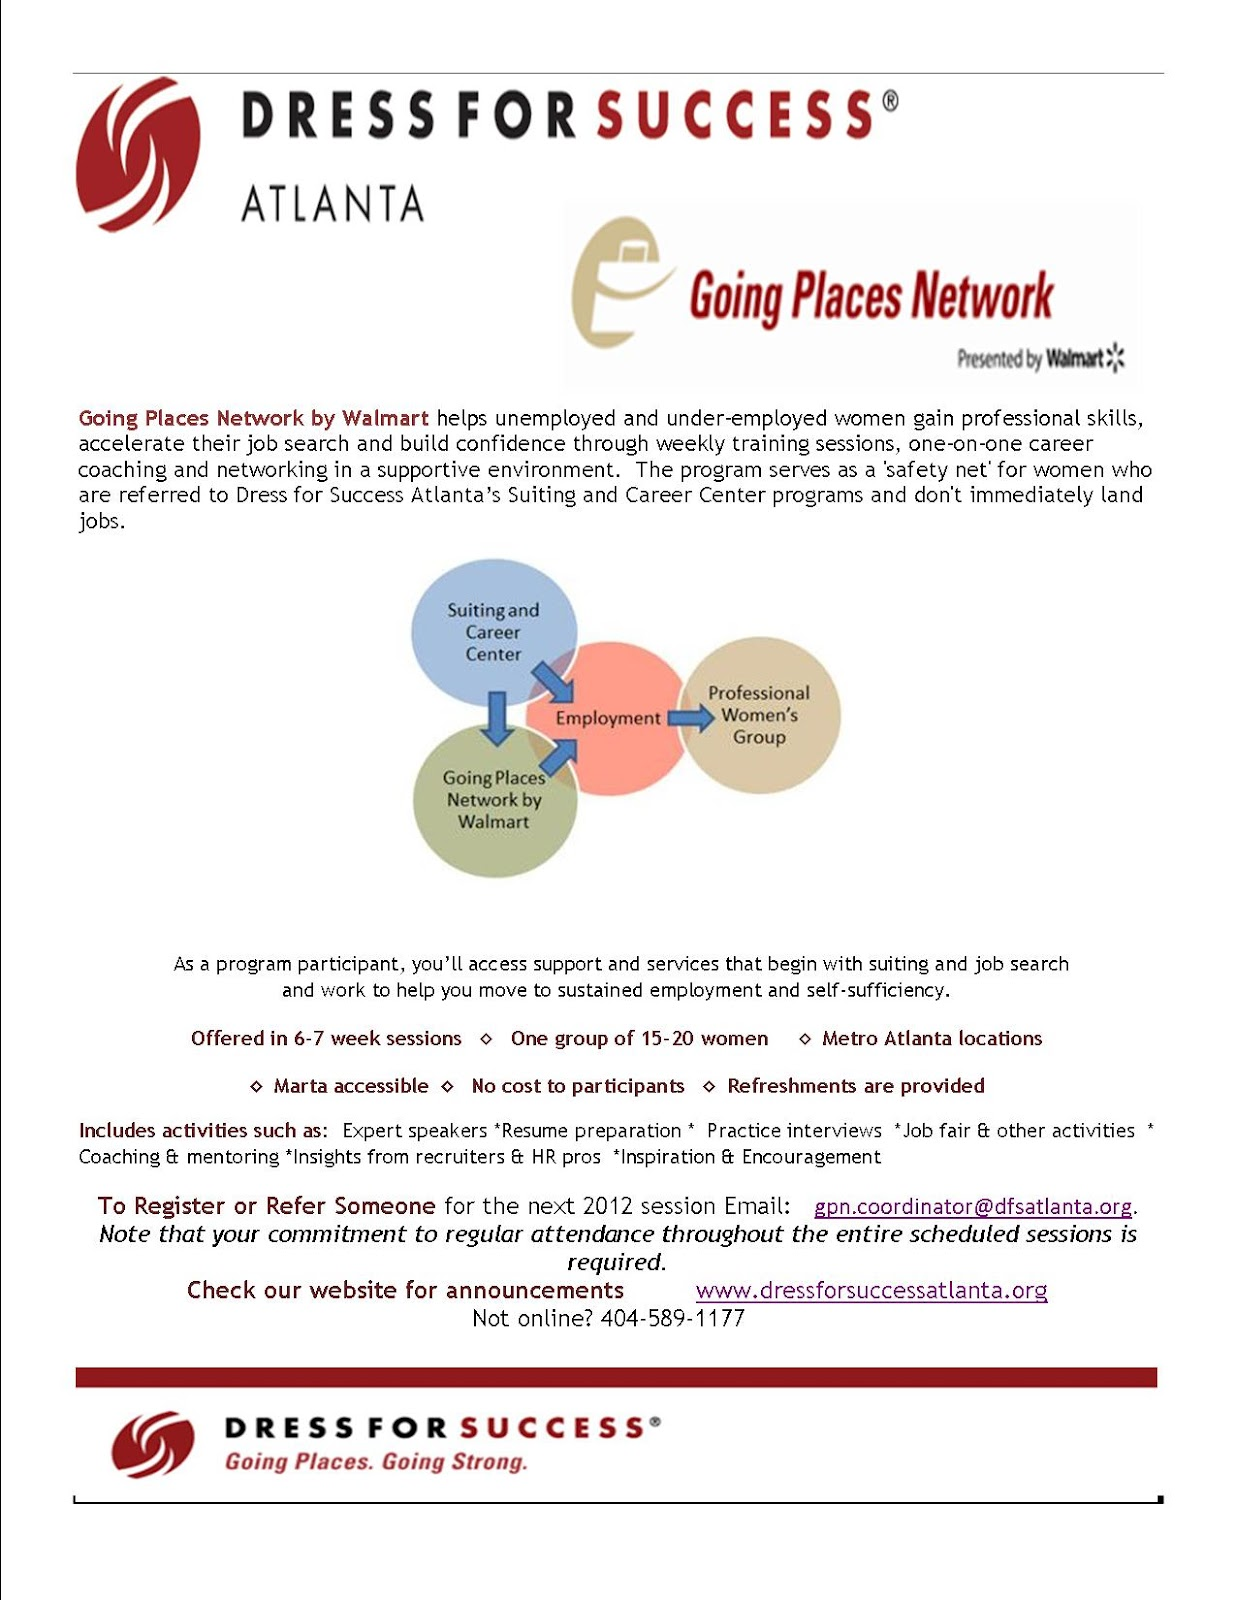 dress for success atlanta going places network by walmart about gpn sessions are held on mondays from 9 00 a m to 12 00 p m location dress for success atlanta trabert avenue nw suite b atlanta ga 30318